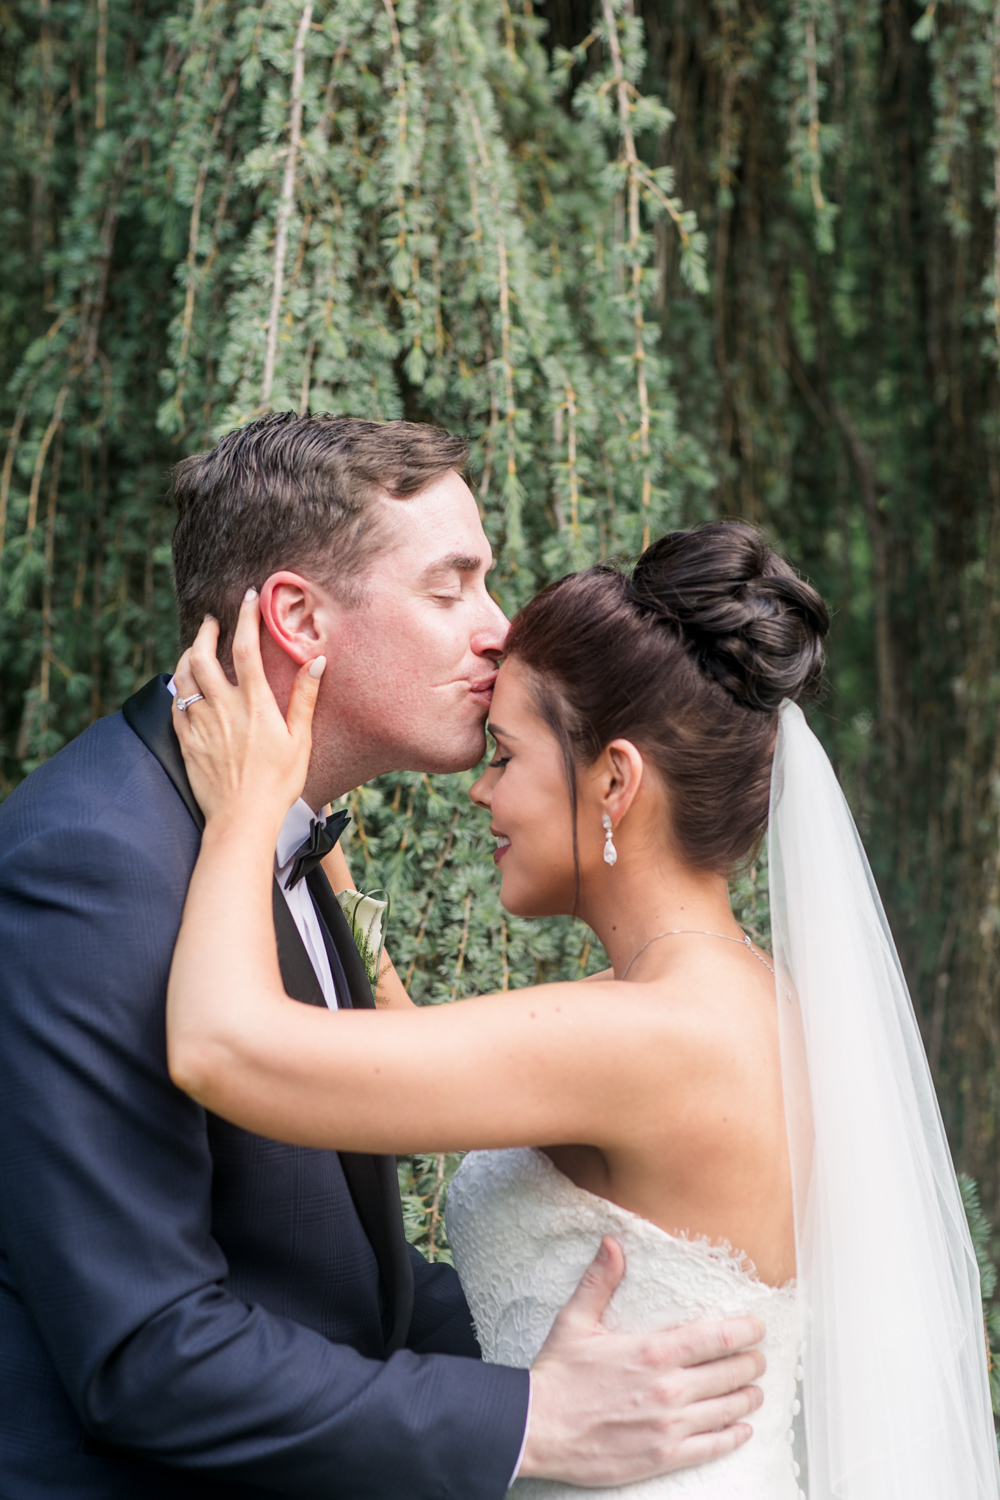 groom kissing the bride on the forhead while she is pulling him towards her at slieve russell hotel in ireland